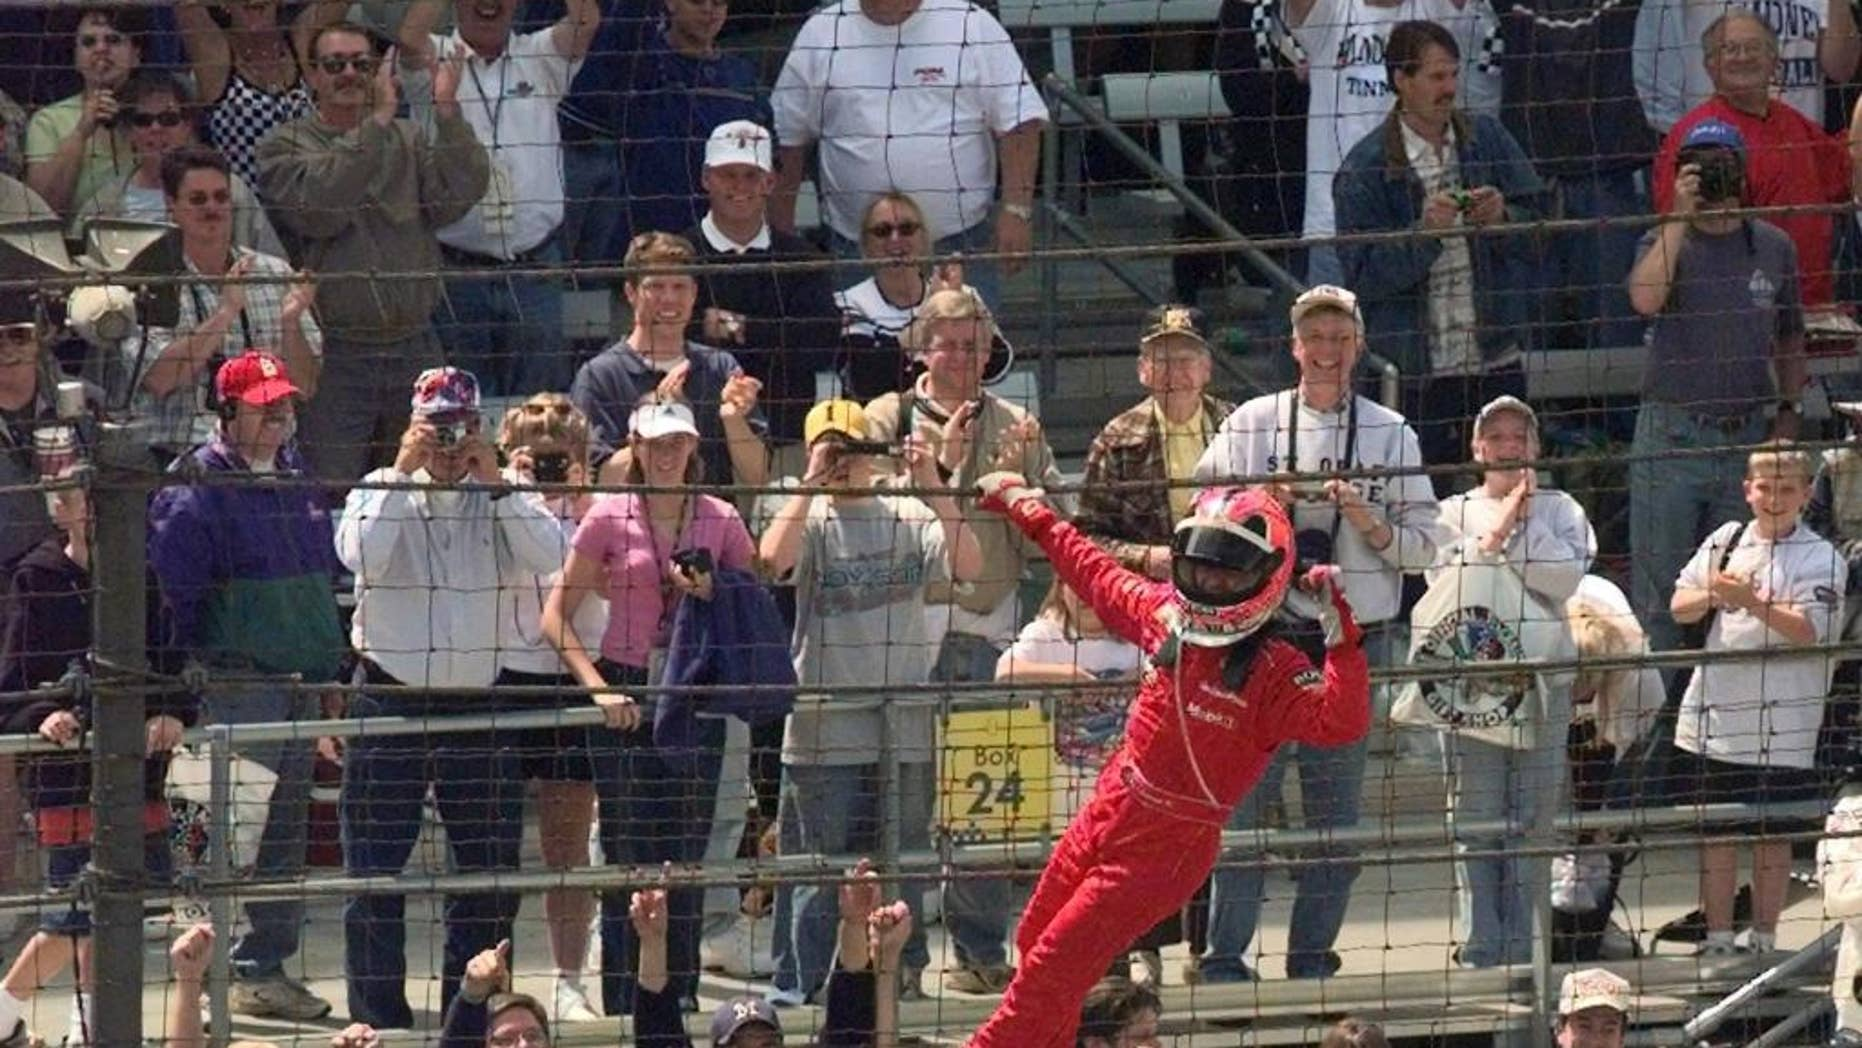 FILE - In this May 27, 2001, file photo, Helio Castroneves, of Brazil, celebrates after winning the 85th running of the Indianapolis 500 auto race by climbing the fencing near the start-finish line at Indianapolis Motor Speedway. (AP Photo/Dave Parker, File)